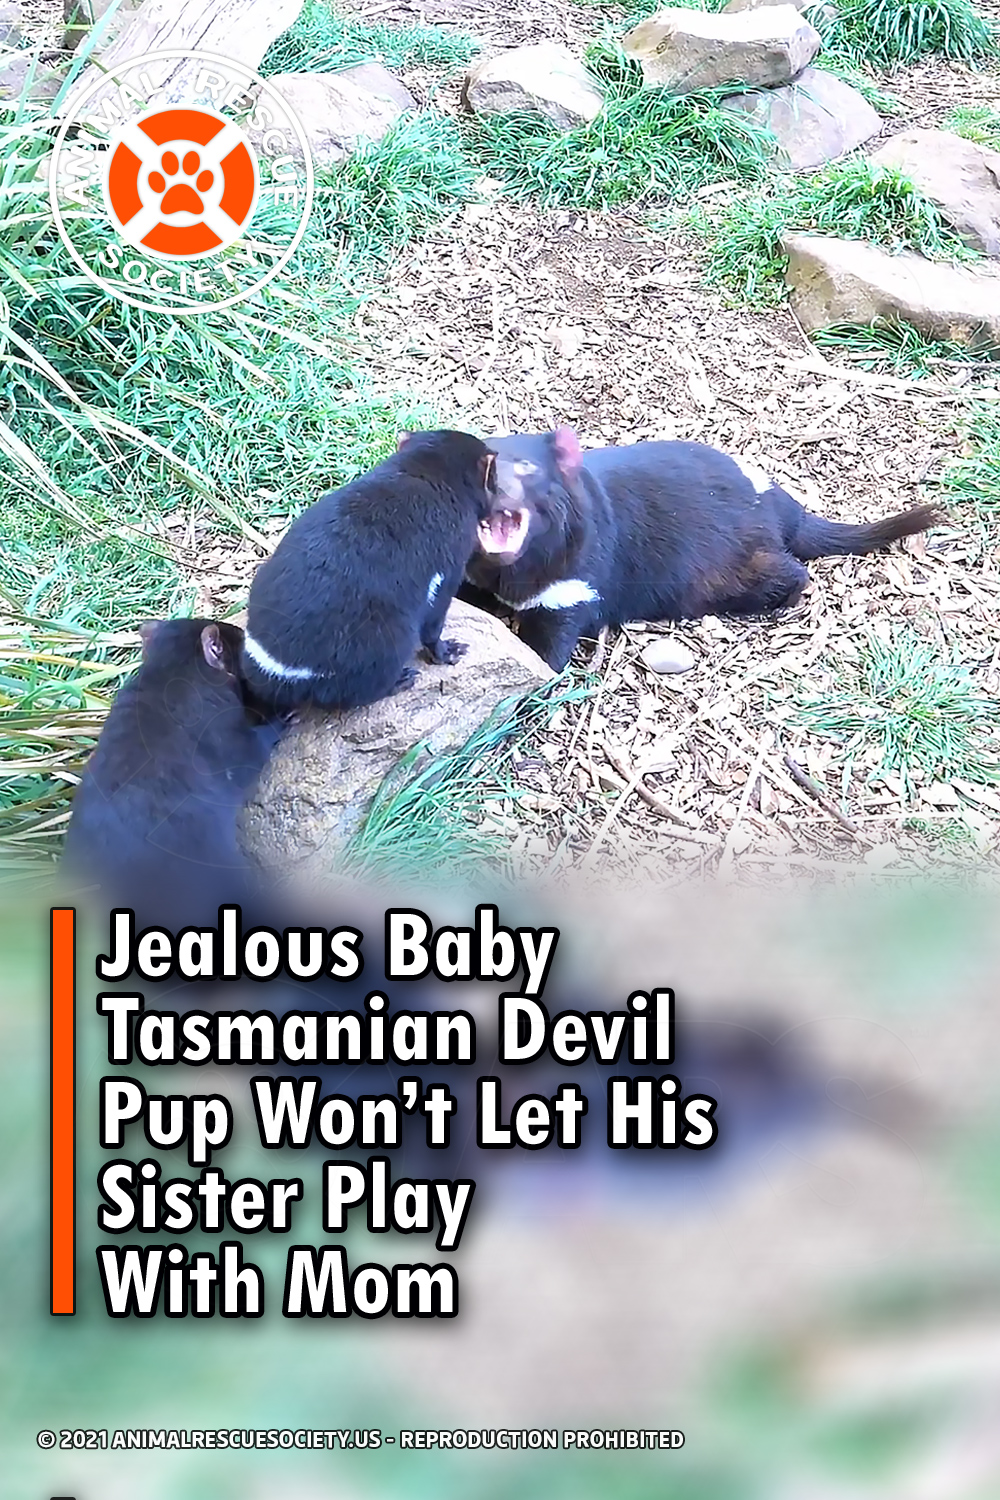 Jealous Baby Tasmanian Devil Pup Won't Let His Sister Play With Mom